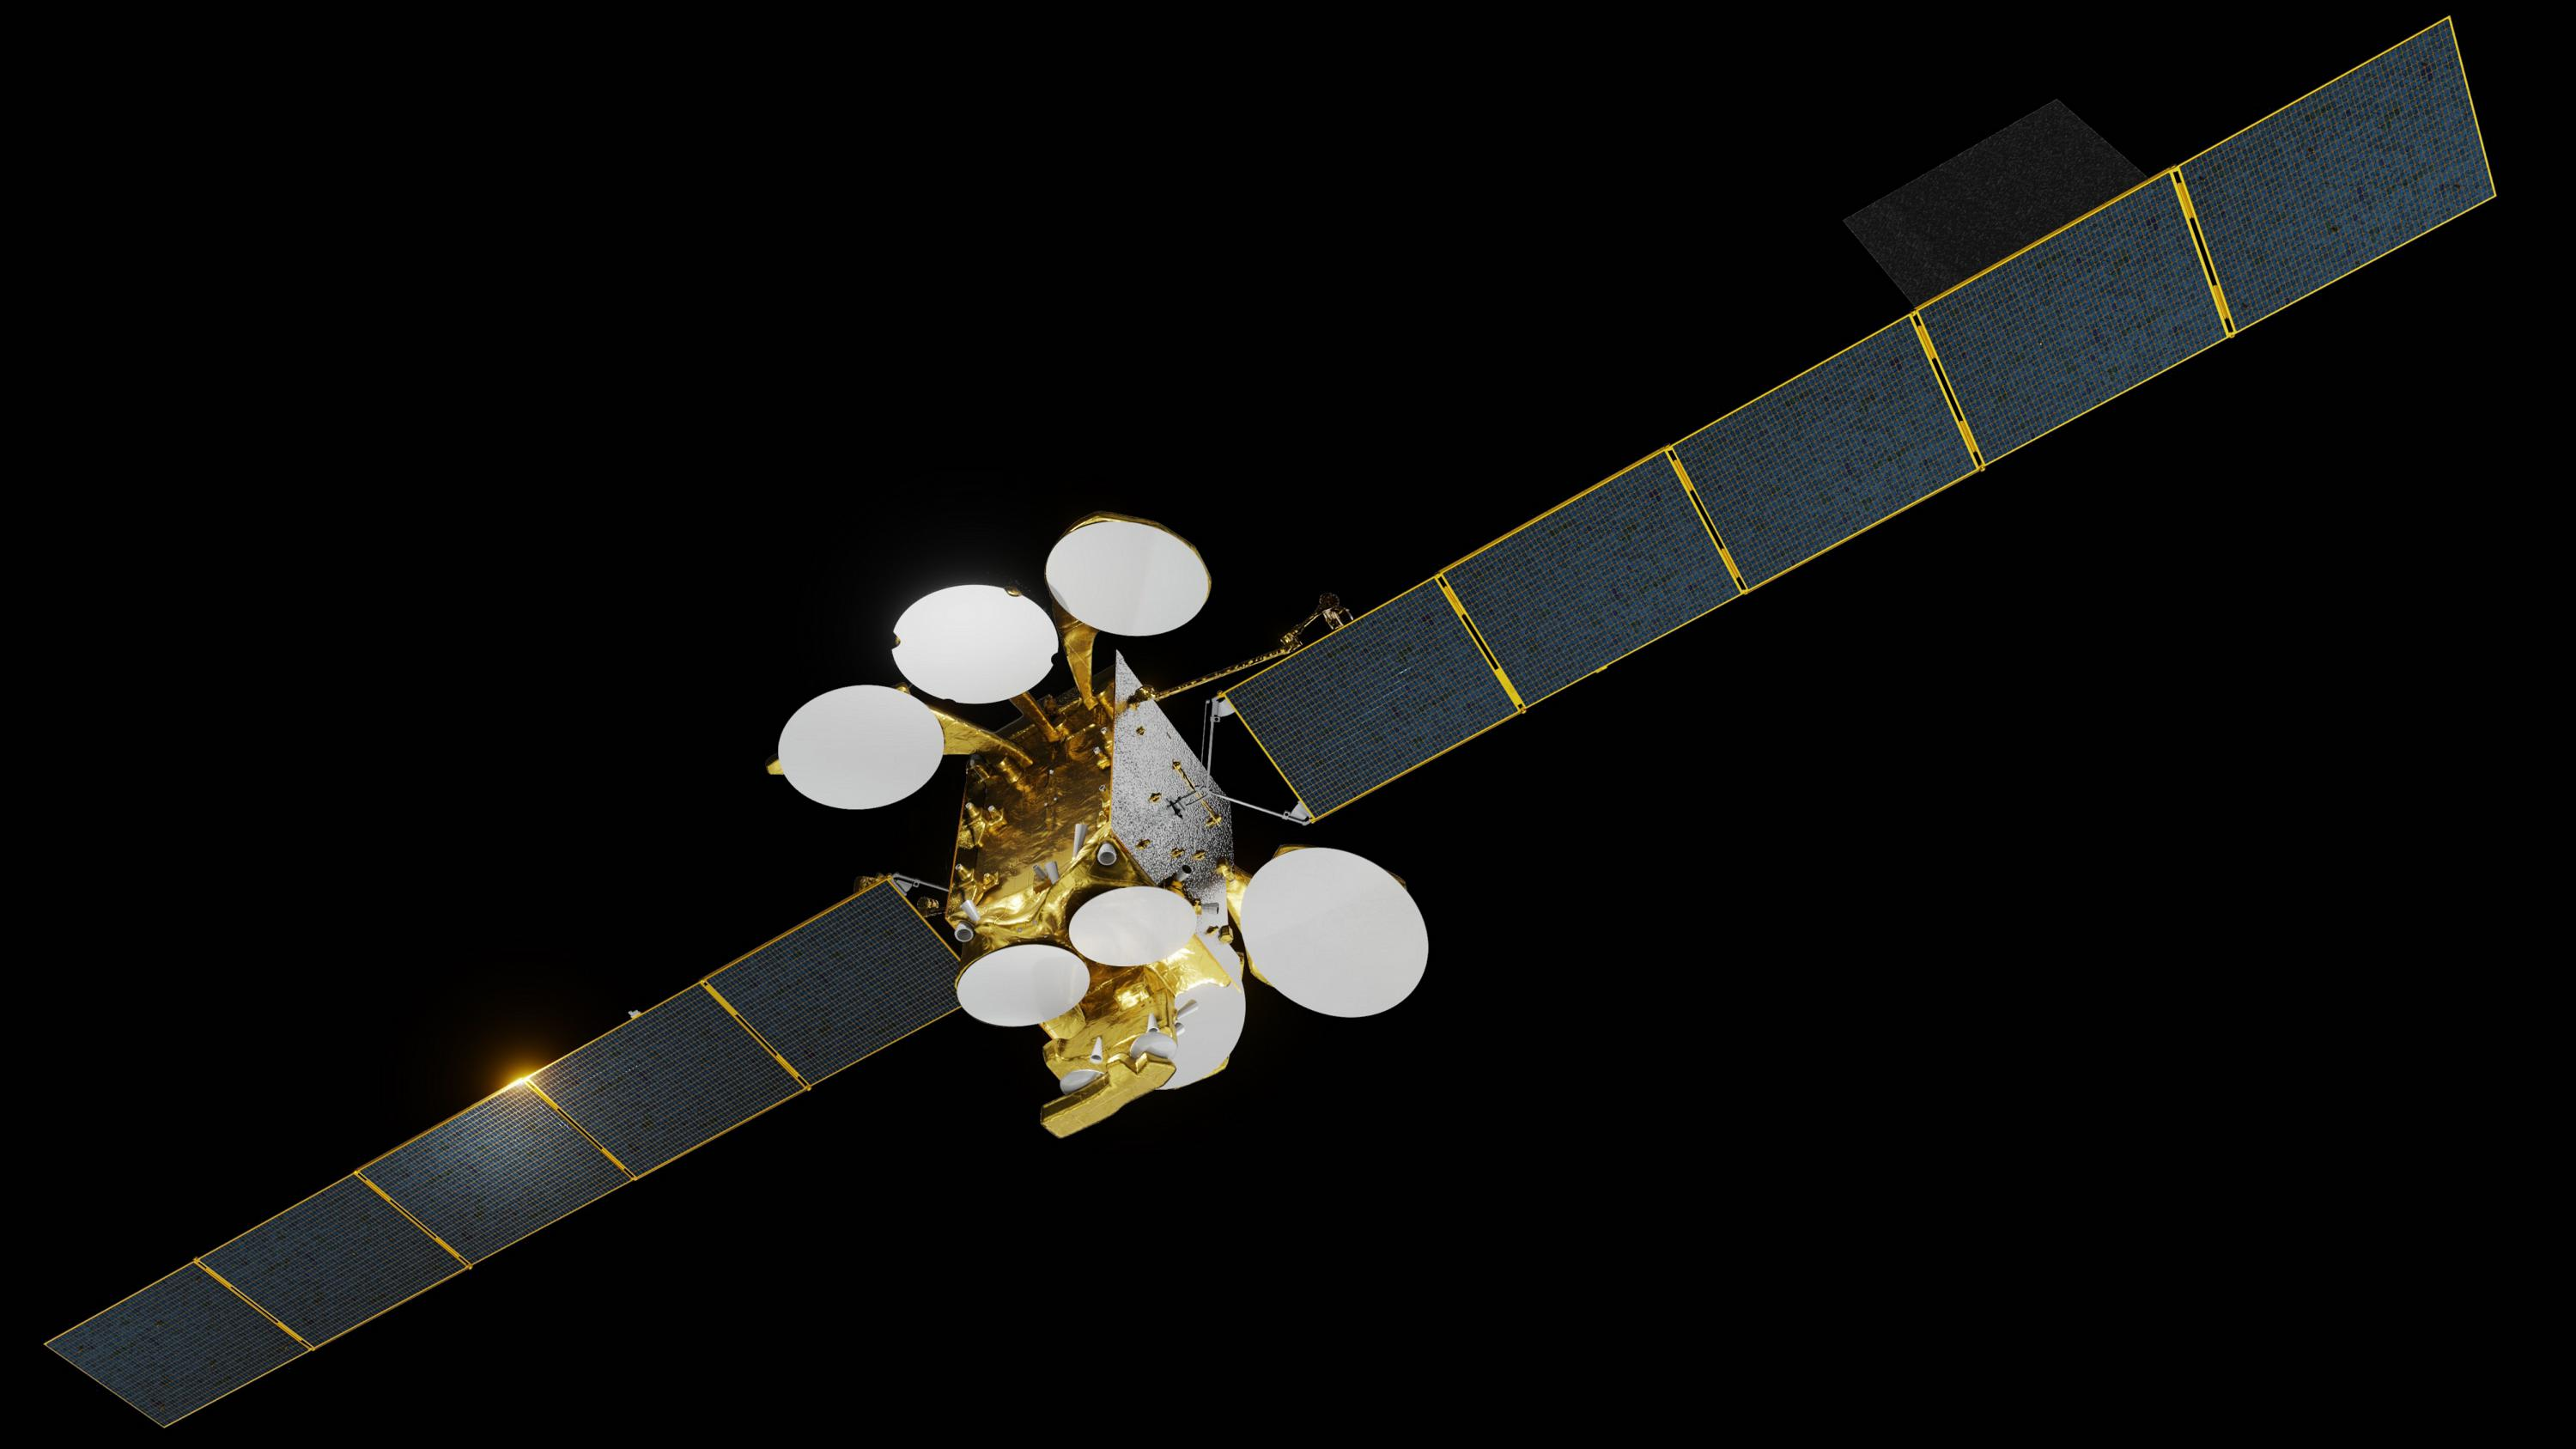 Turksat launches 5A satellite